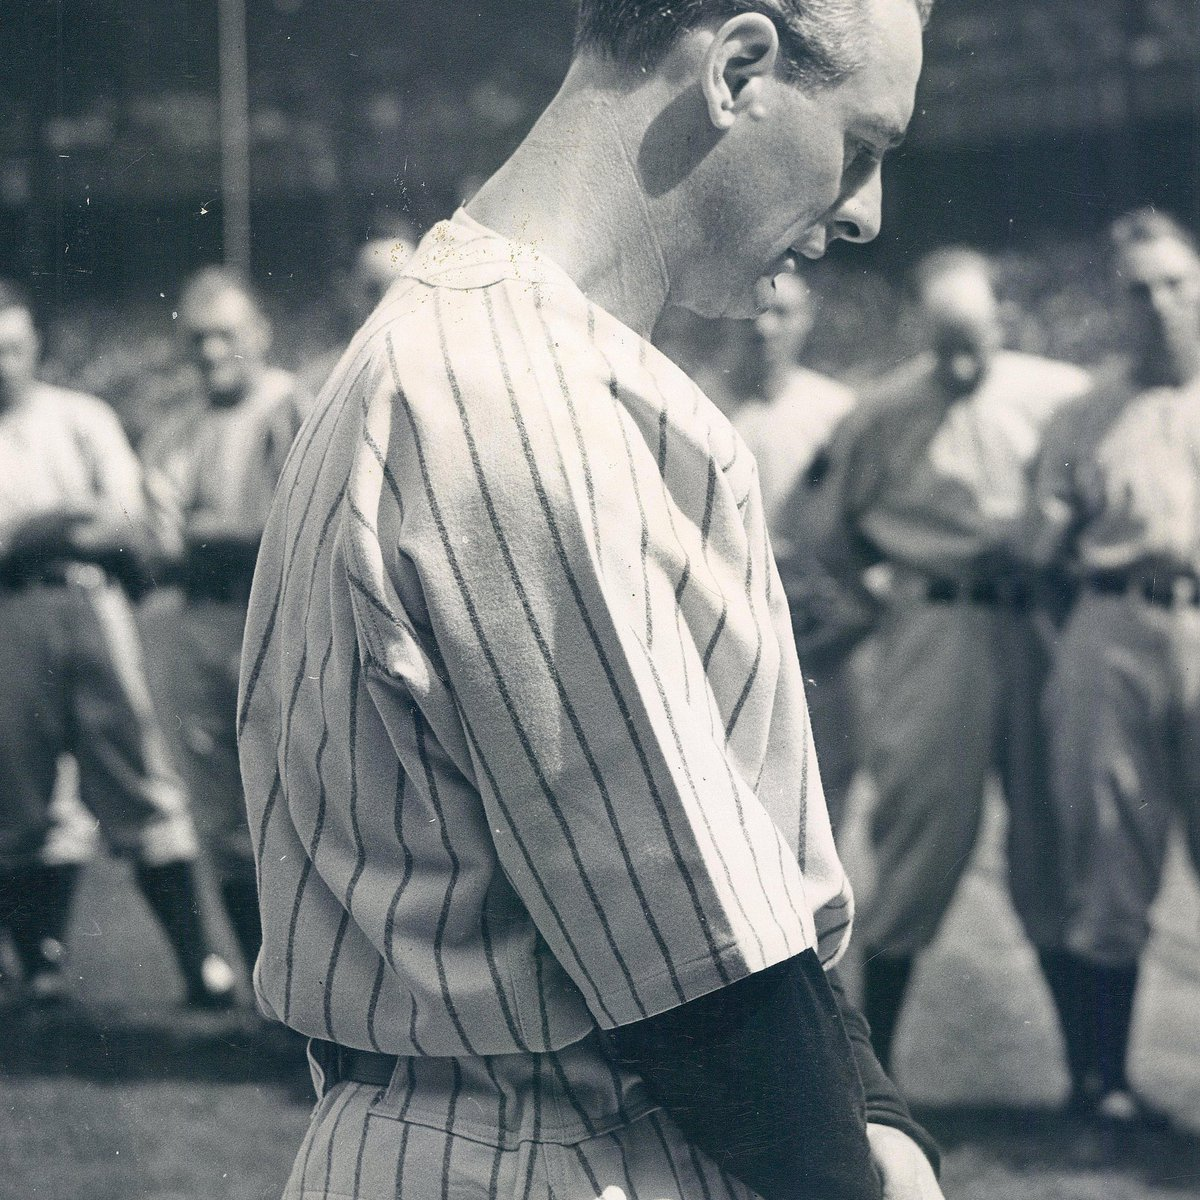 #OTD in 1939, Lou Gehrig delivered his farewell speech #LouGehrig https://t.co/M1x4ZQeMLA